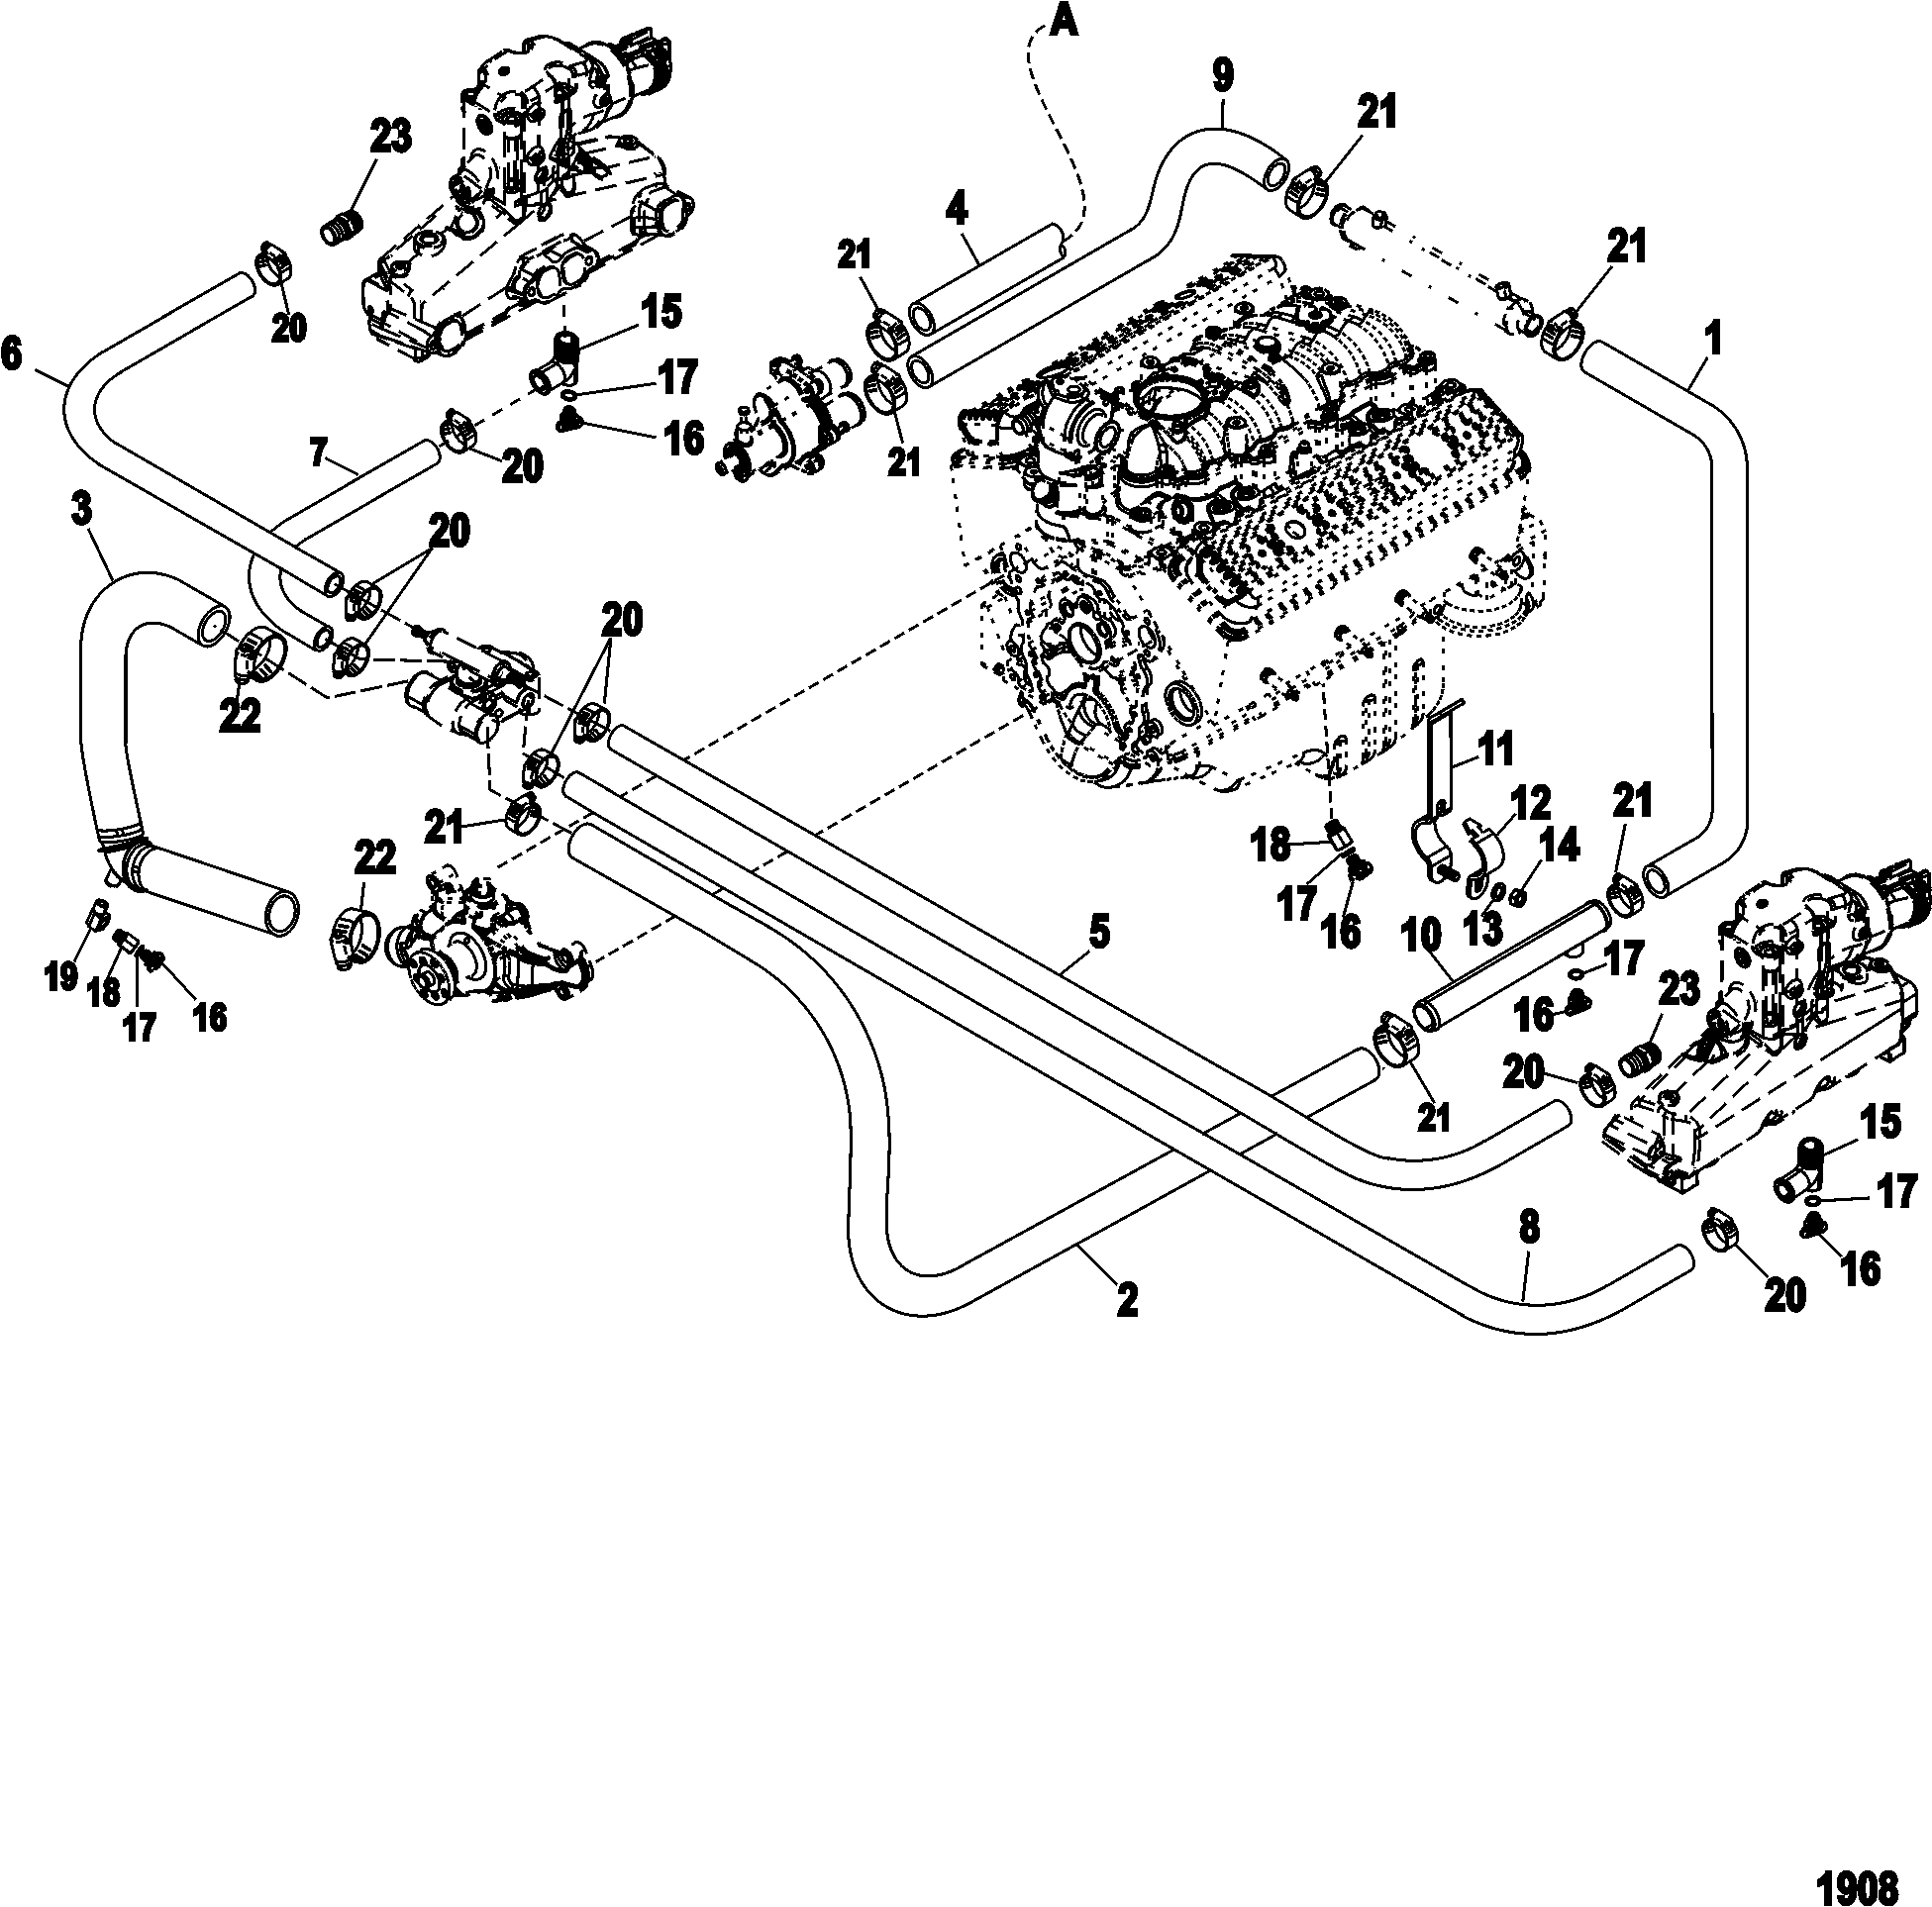 5.7 Engine Parts Schematic - Wiring Diagram